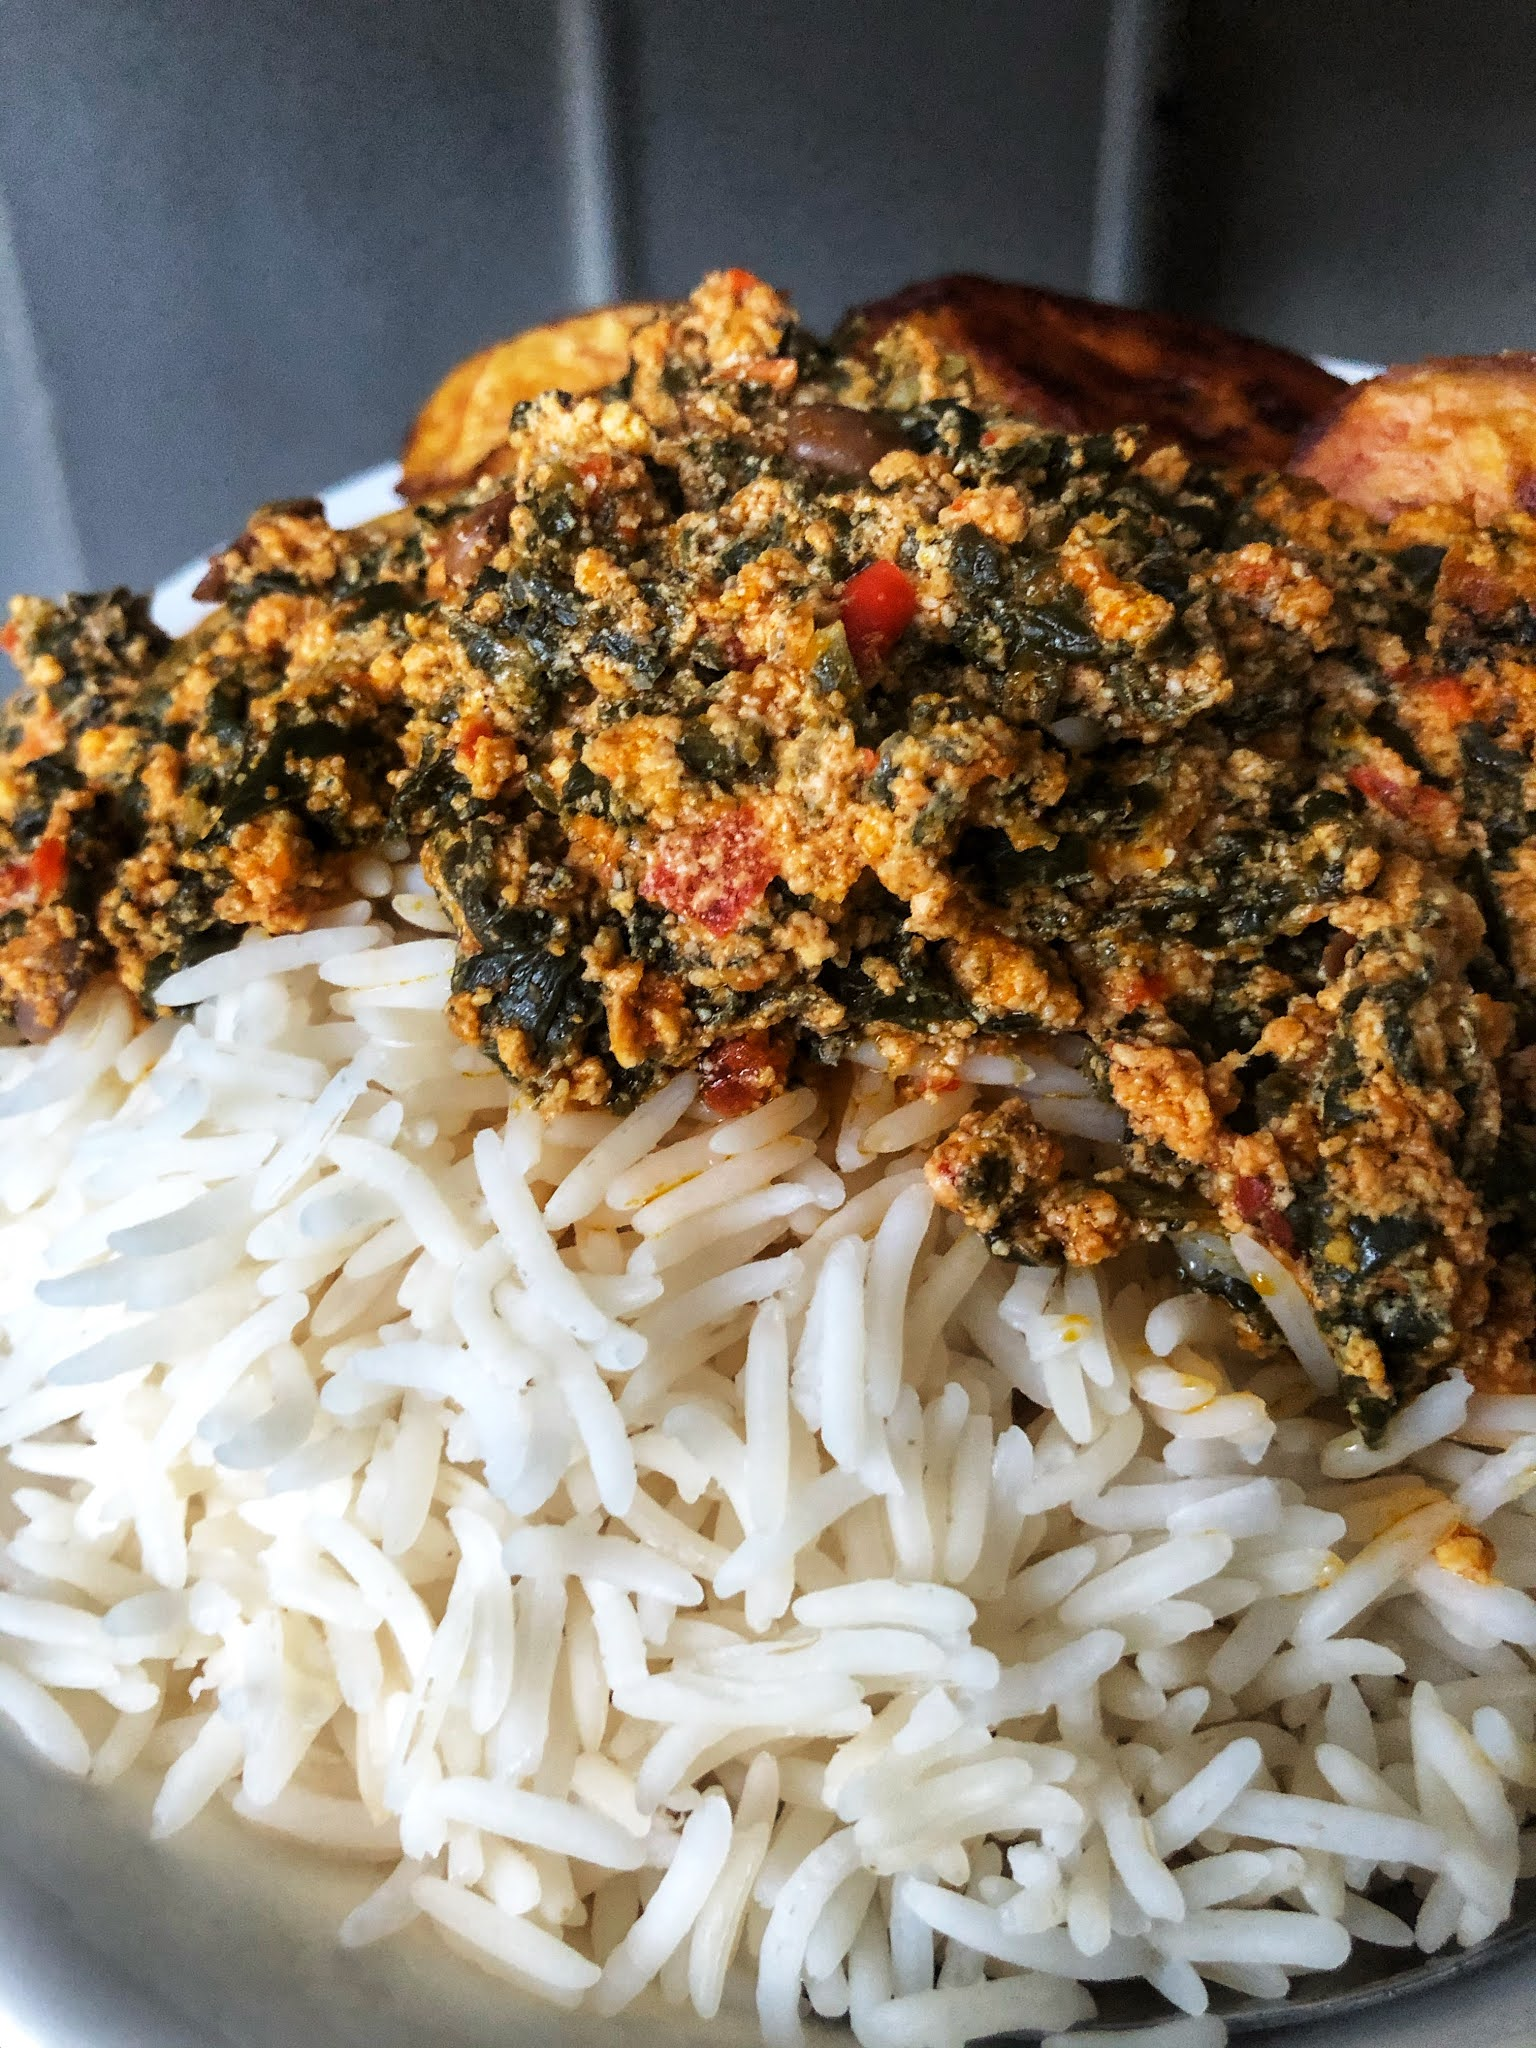 The Vegan Nigerian Vegan Egusi Recipe How To Make Nigerian Egusi Soup